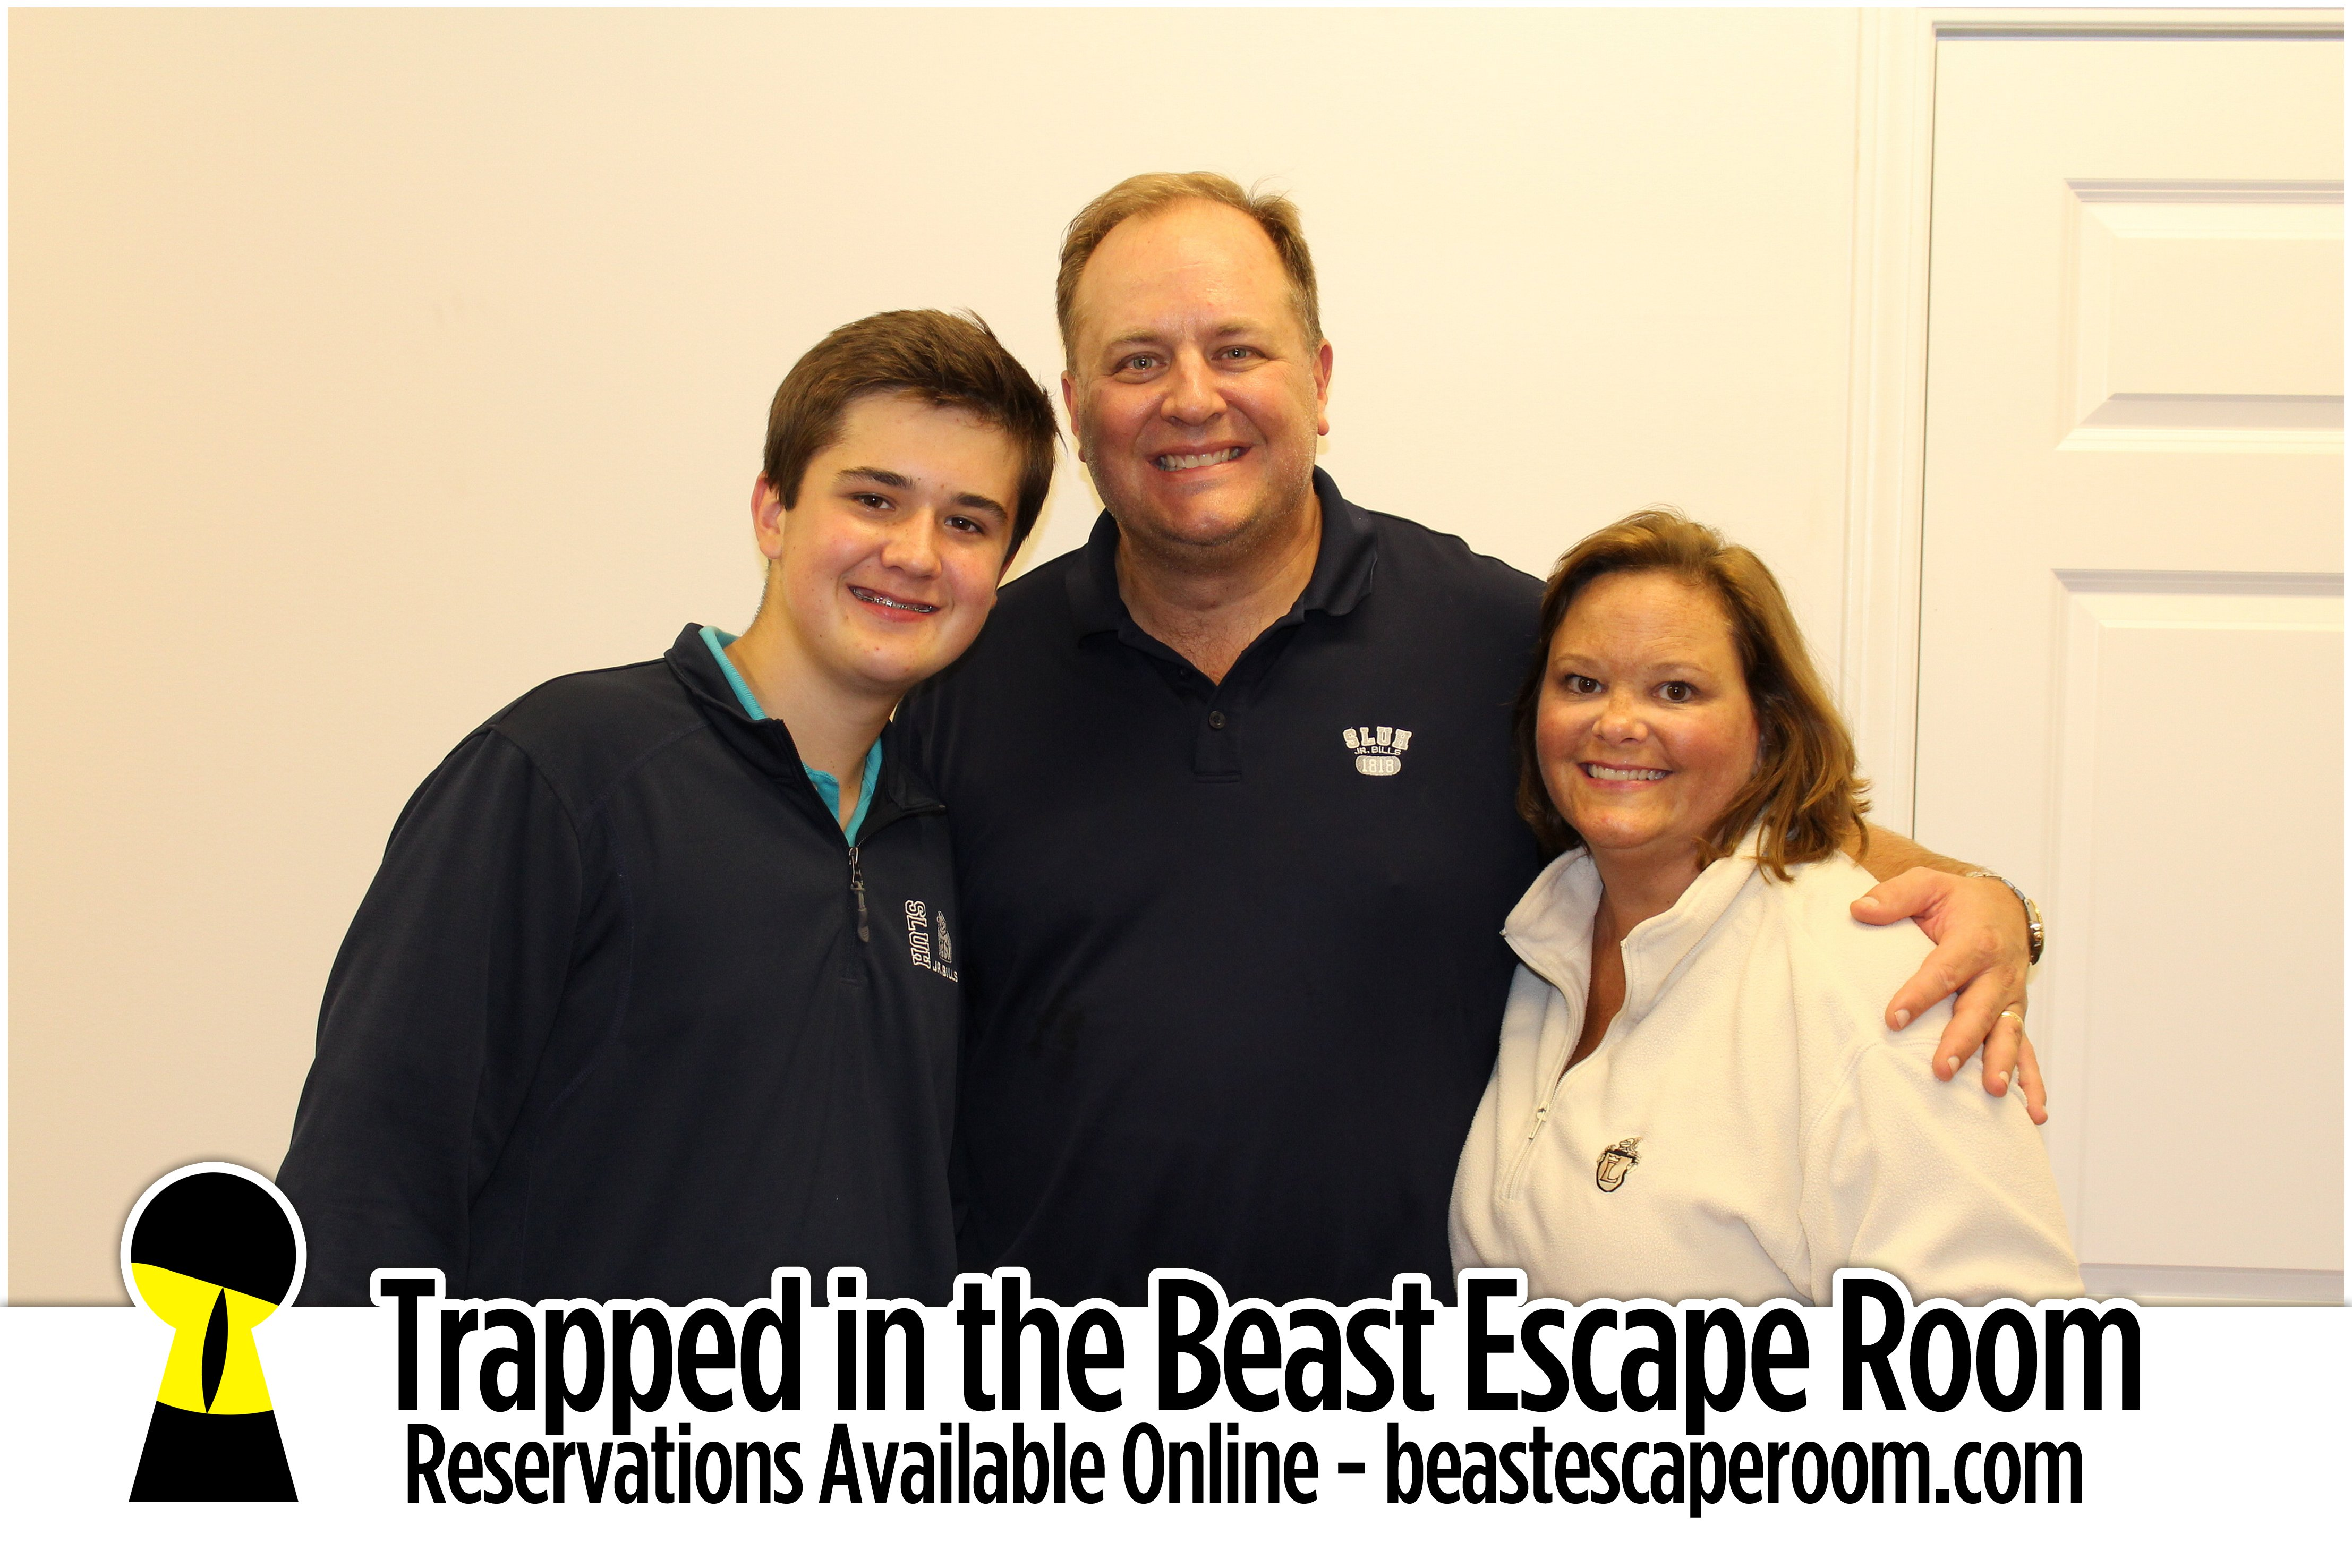 Trapped in the Beast Escape Room – Beast Escape Room